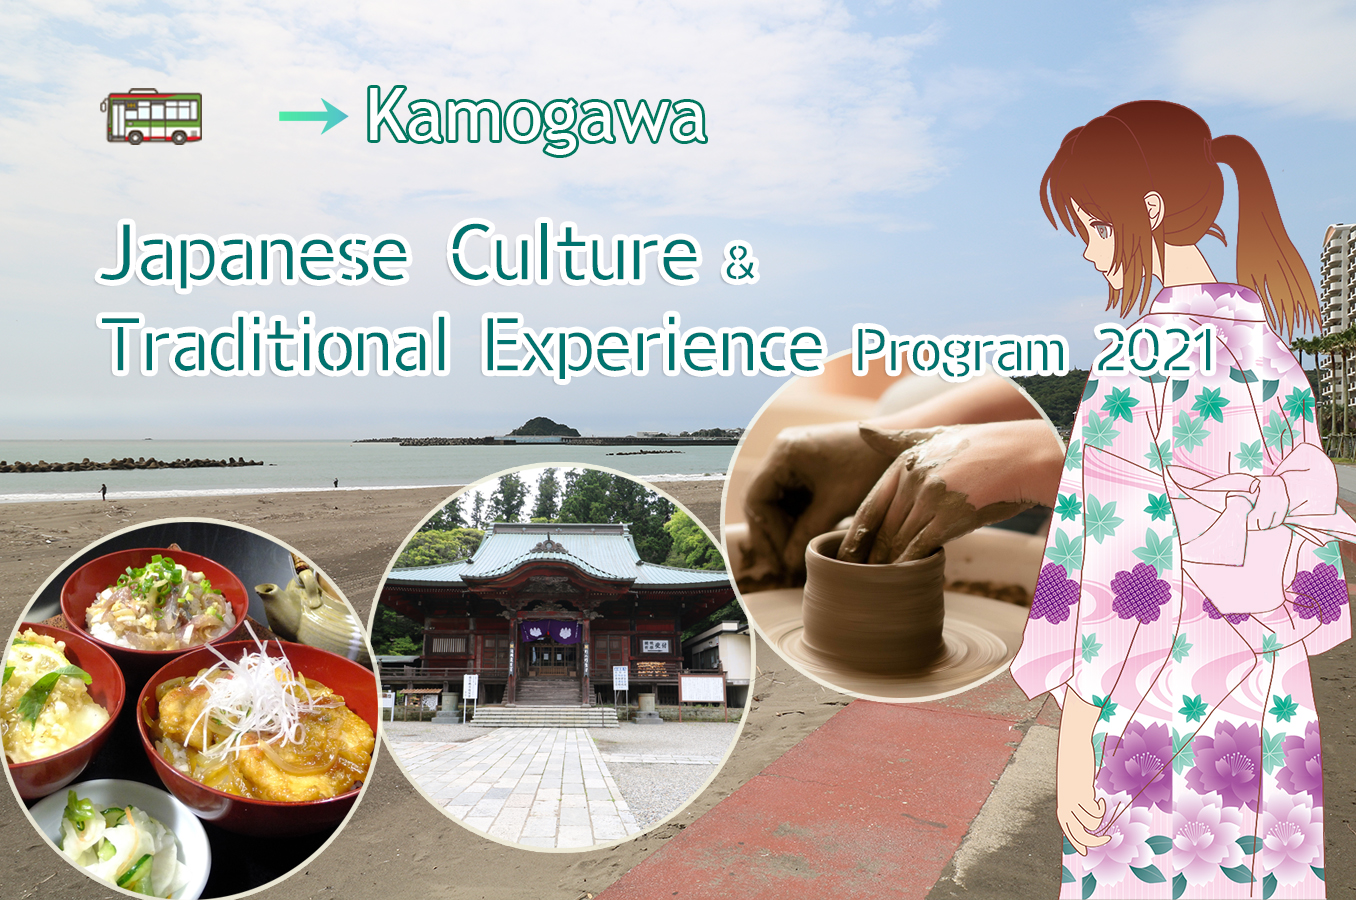 Japanese Culture & Traditional Experience 無料モニターツアー 参加者募集!<外国人対象>